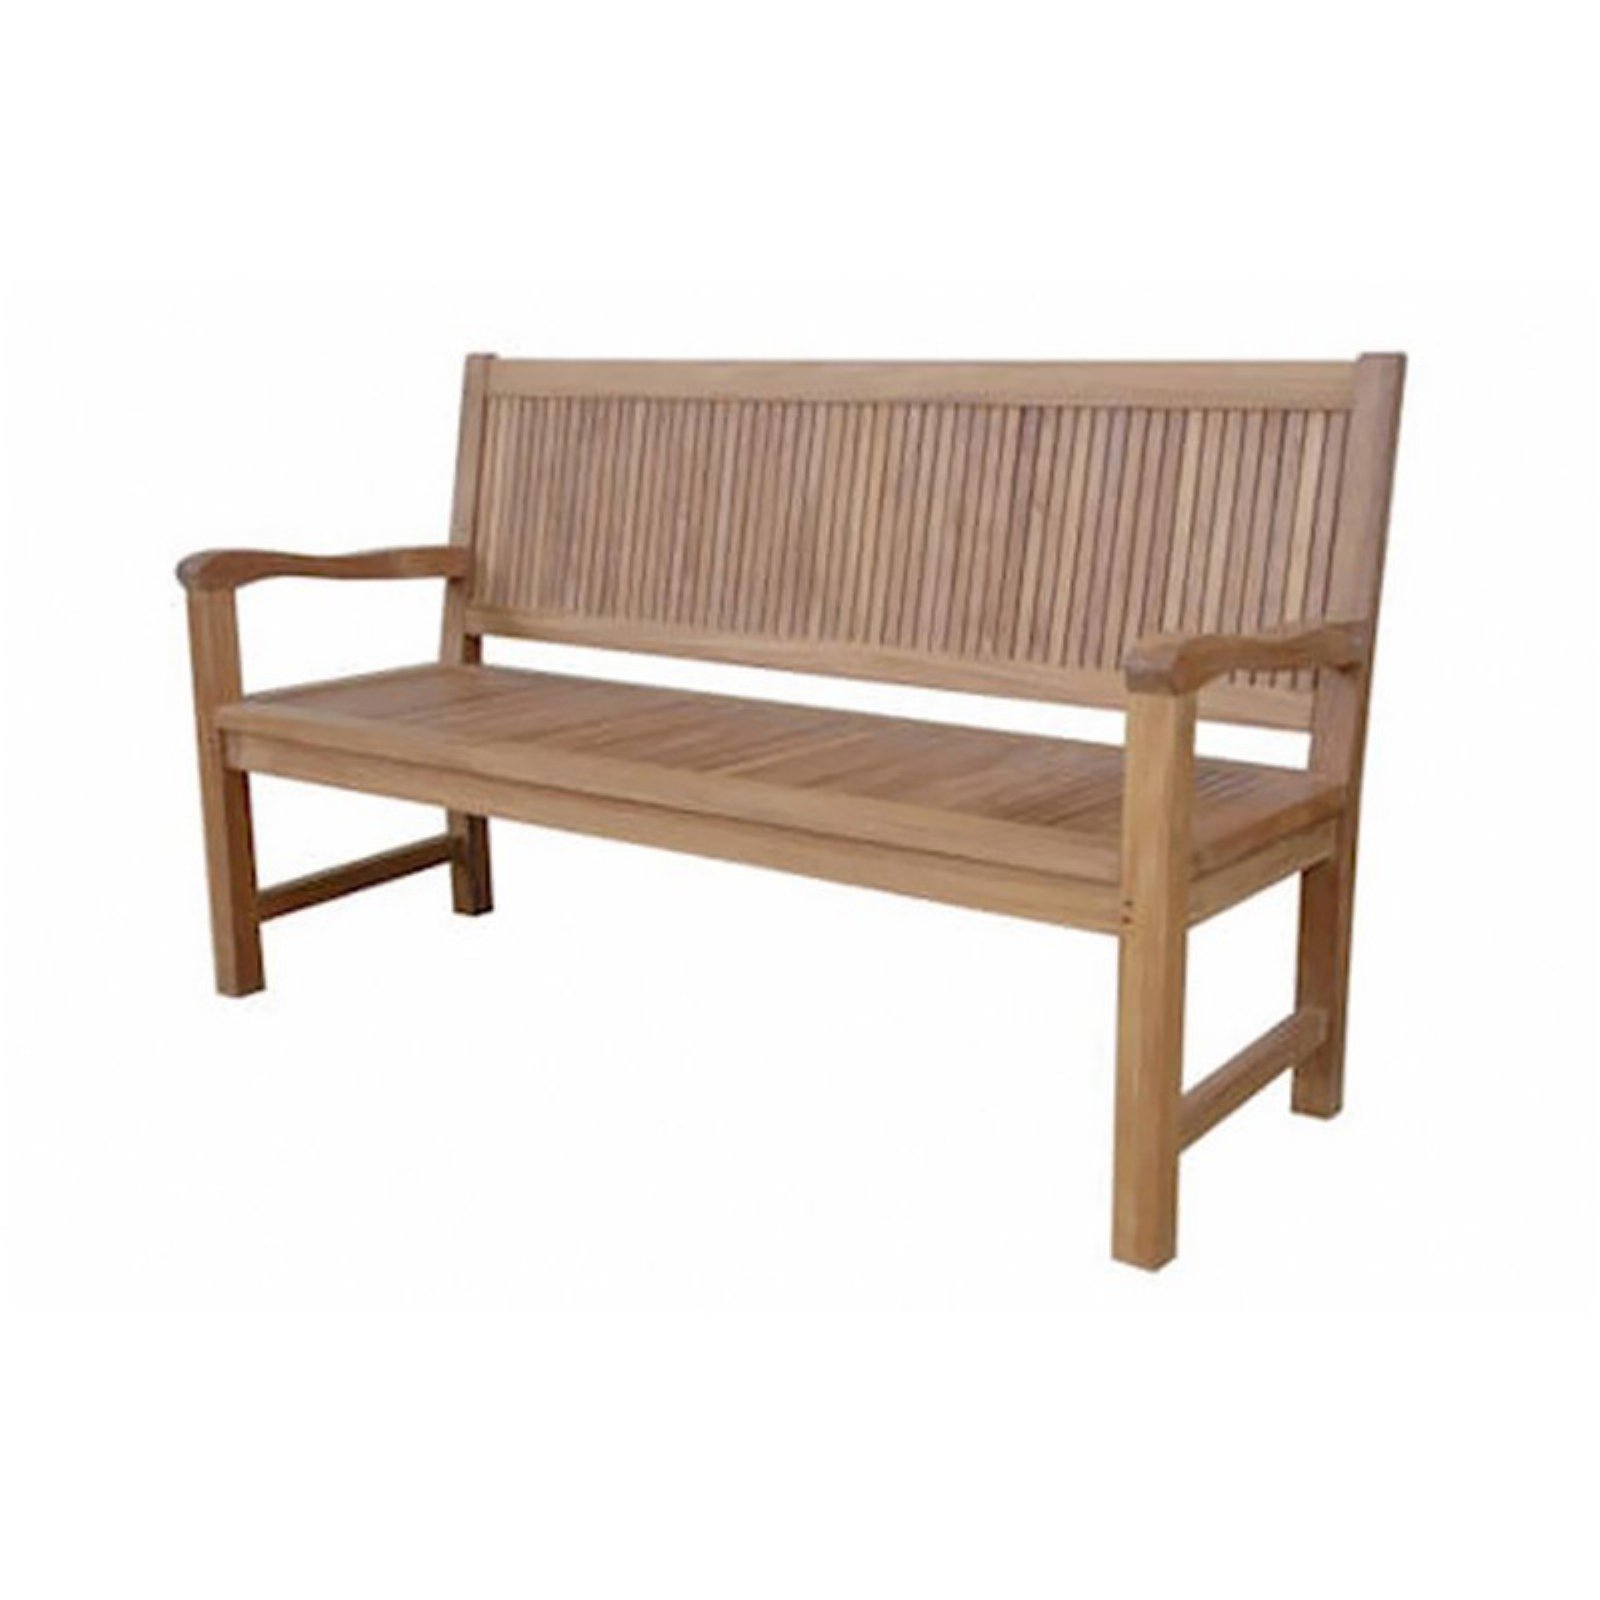 Anderson Teak Chester 3 Seat 4 .92 ft. Outdoor Bench by Anderson Teak